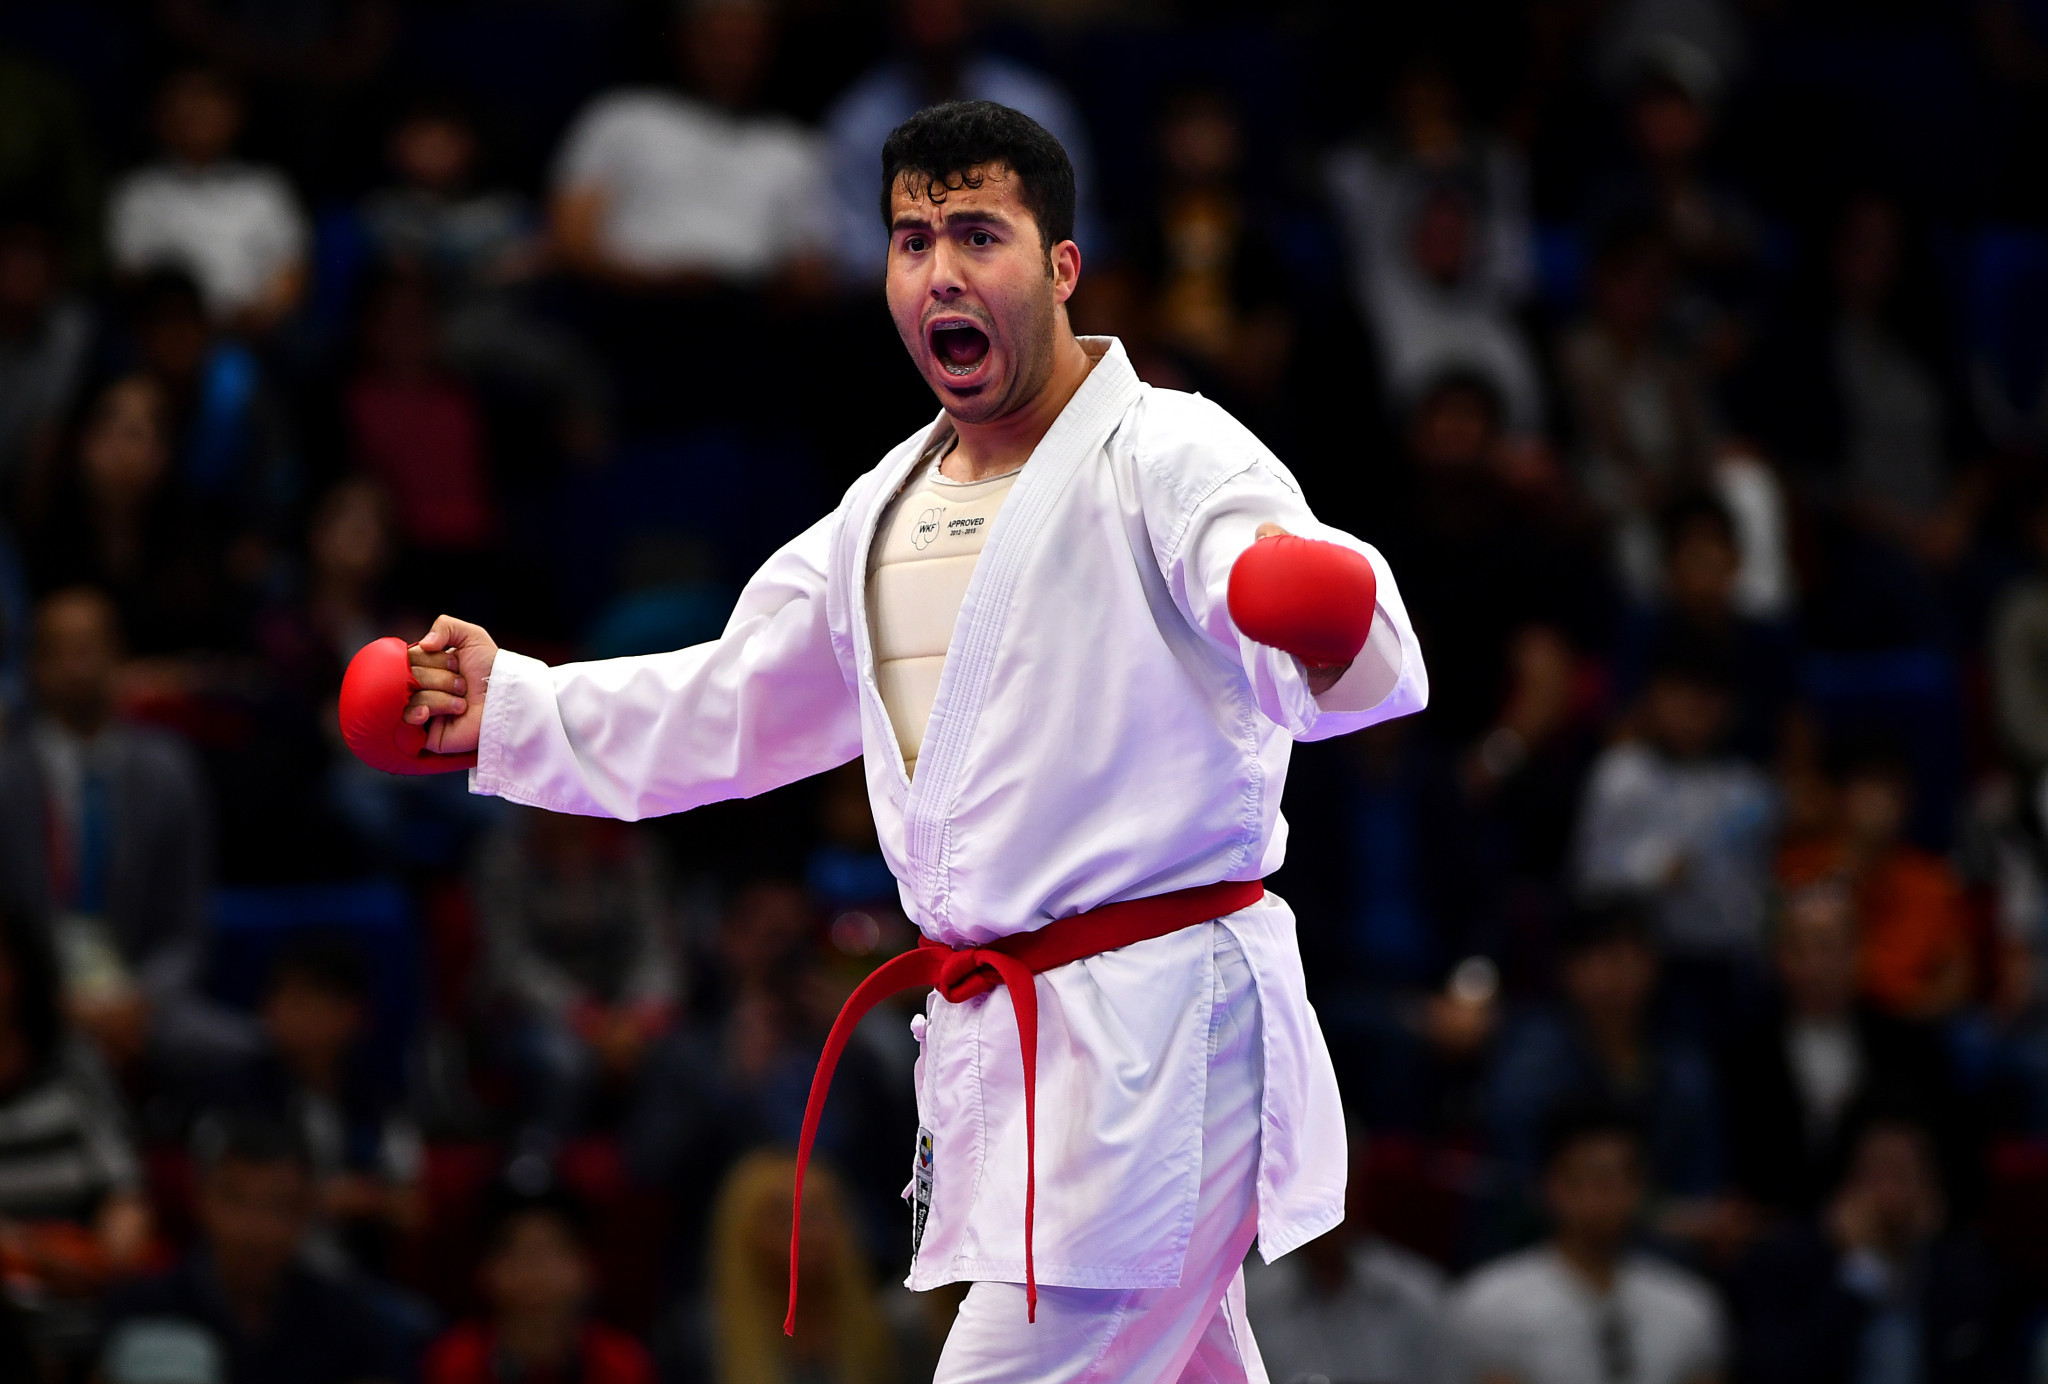 Turkey claim three golds on finals day of Karate-1 Premier League in Istanbul